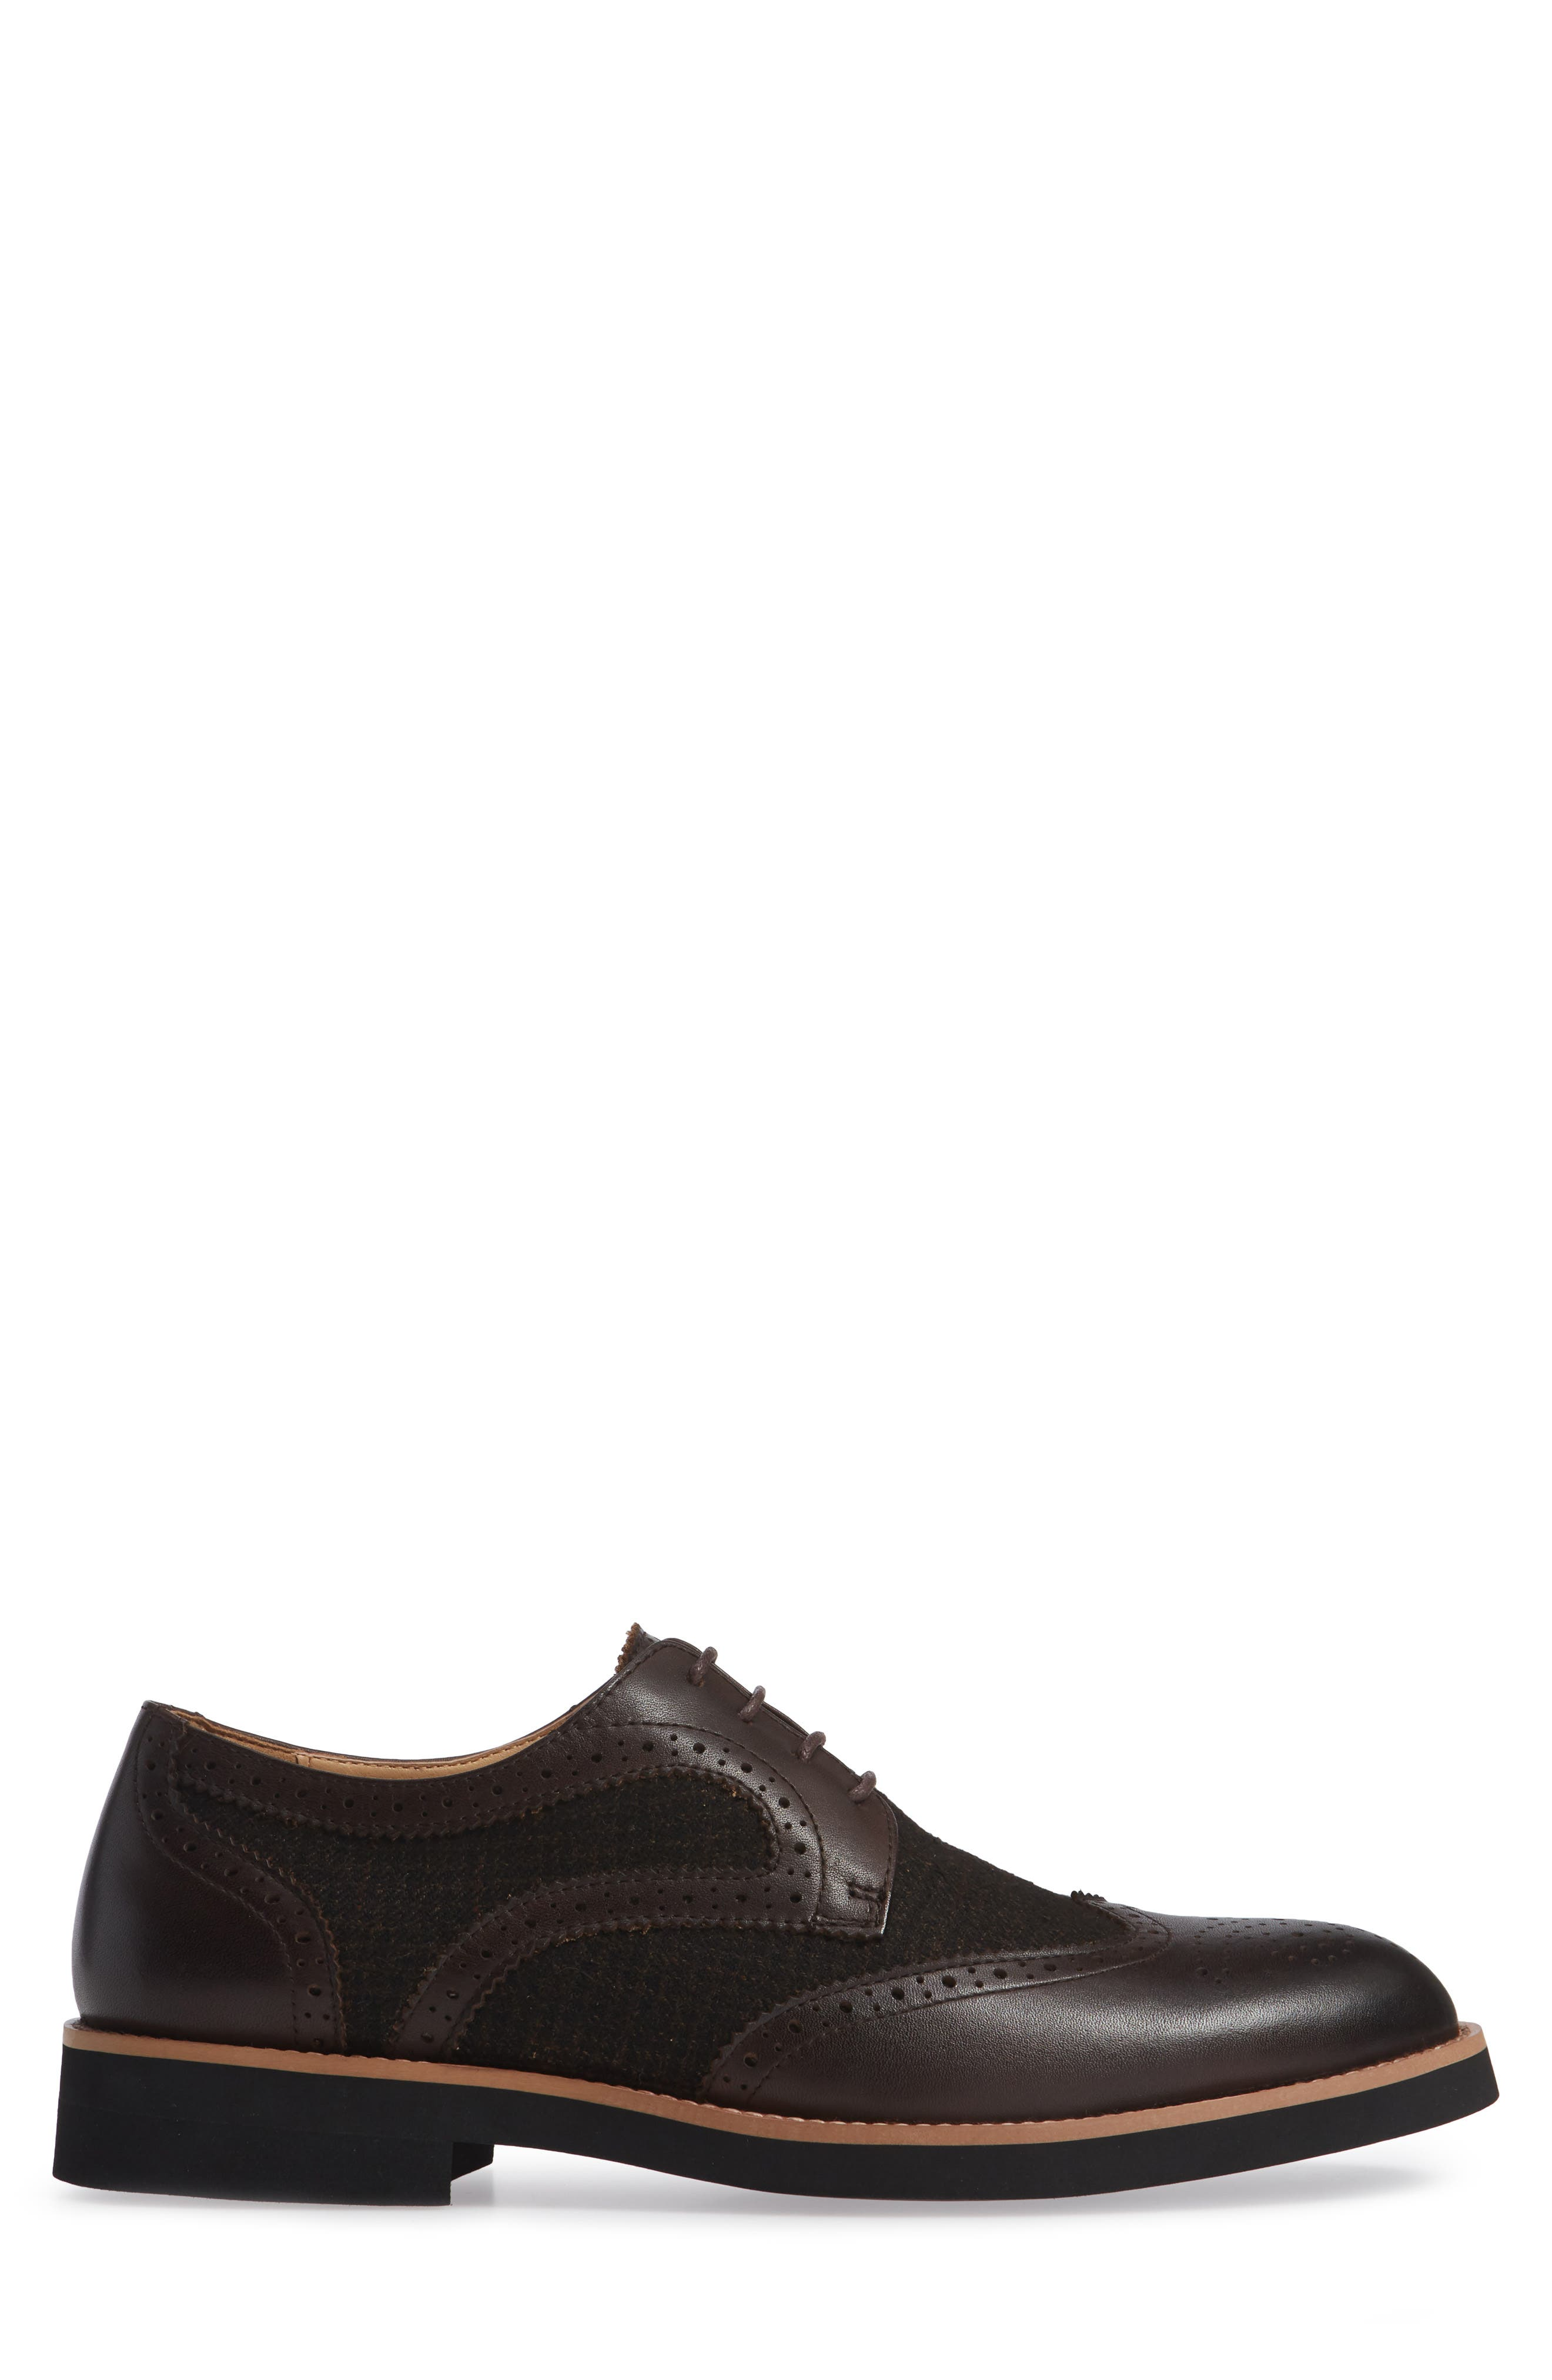 Bolton Wingtip,                             Alternate thumbnail 3, color,                             BROWN